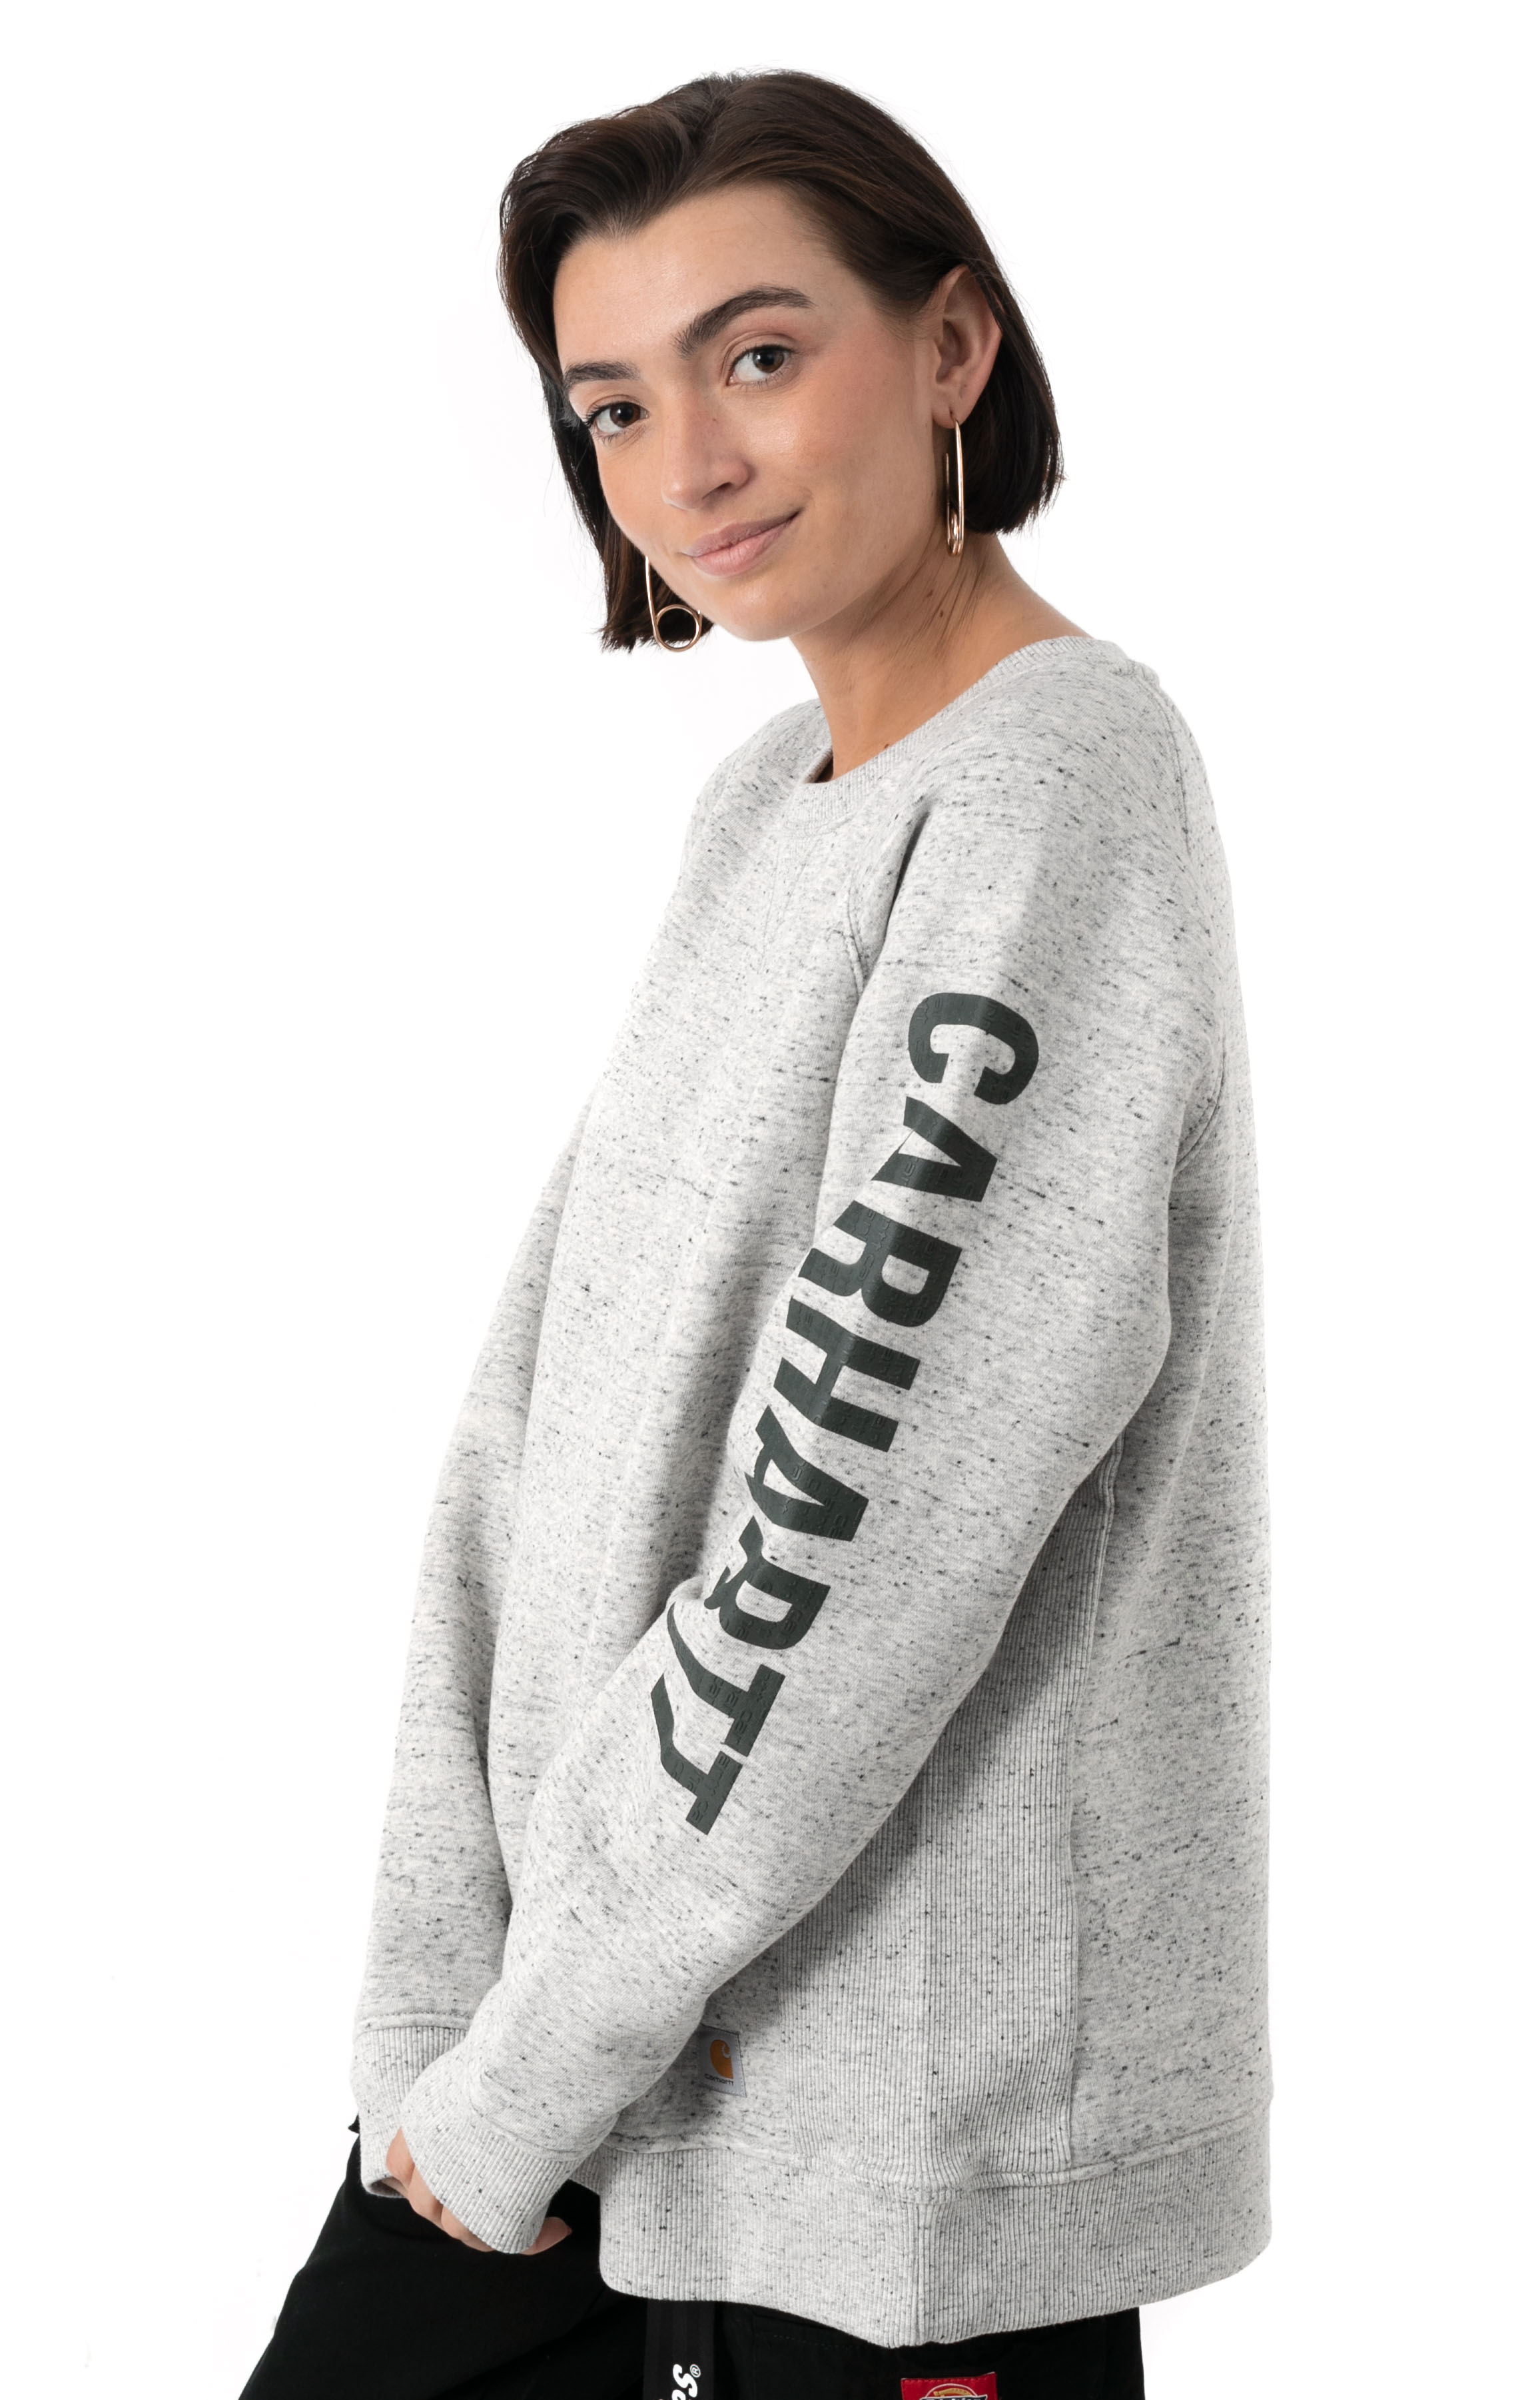 (104410) Relaxed Fit MW Graphic Sweatshirt - Asphalt Heather Nep  2